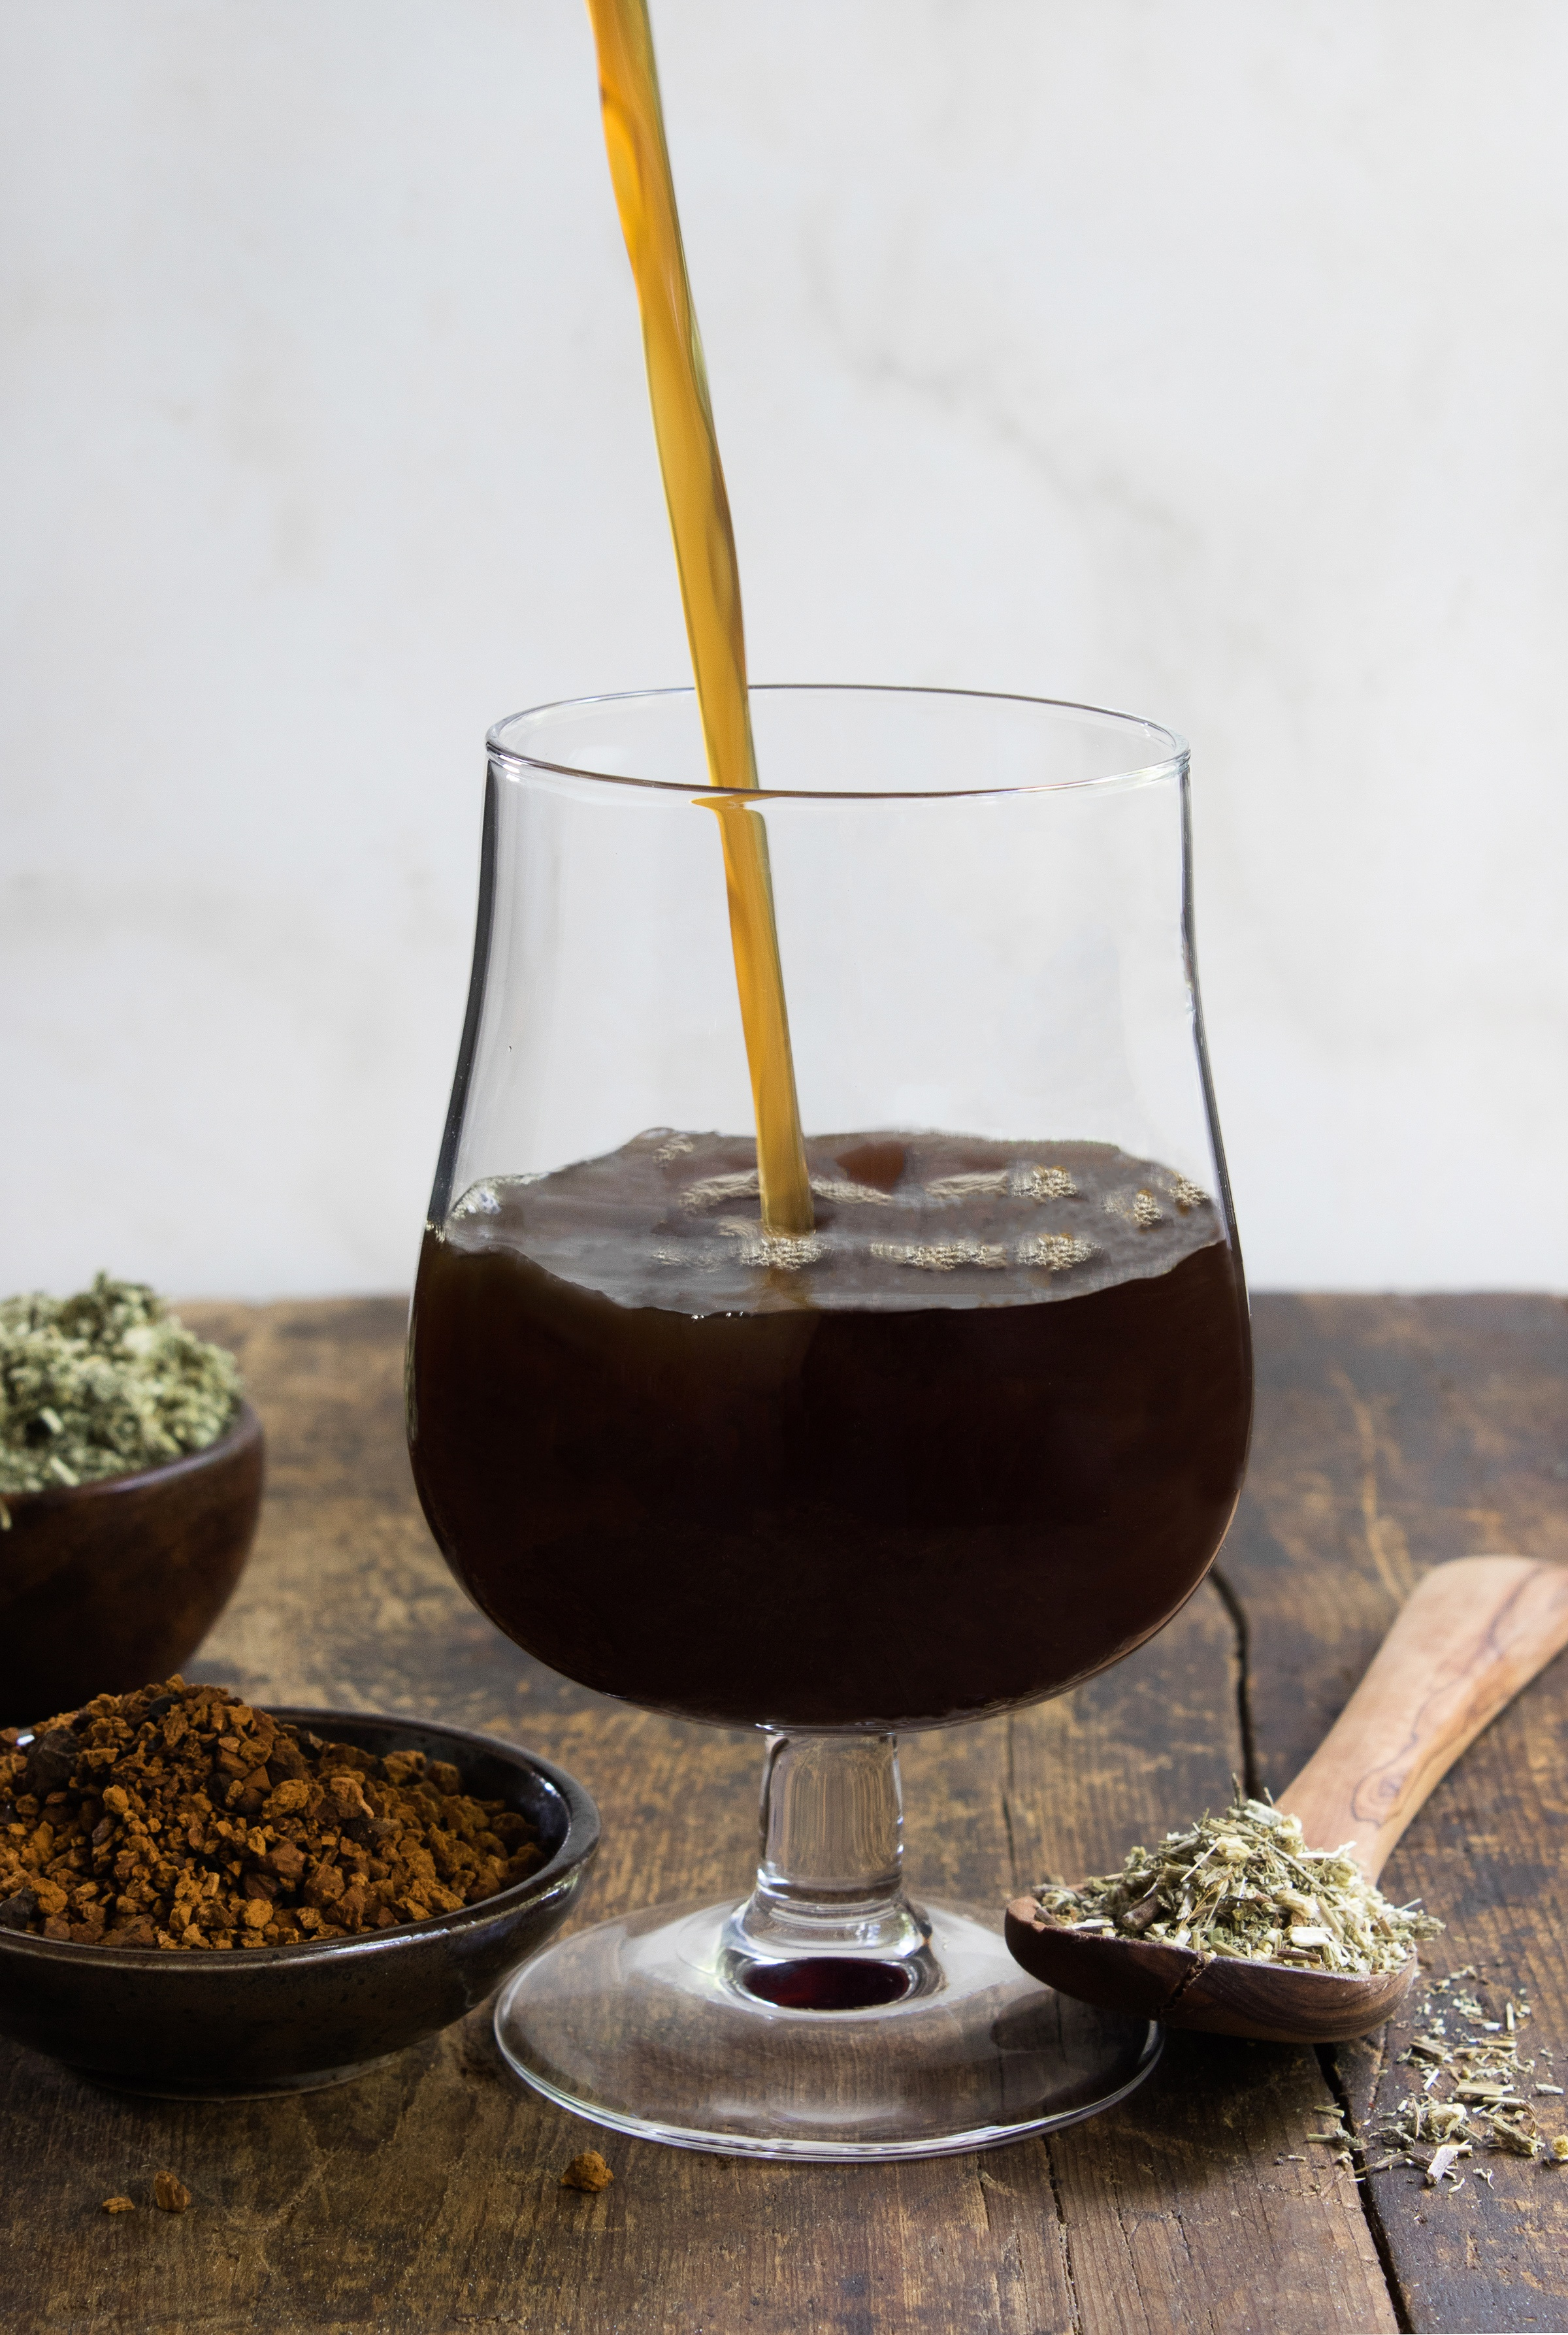 Deep roots gruit (herbal beer) being poured into a glass next to herbs and mushrooms used for brew